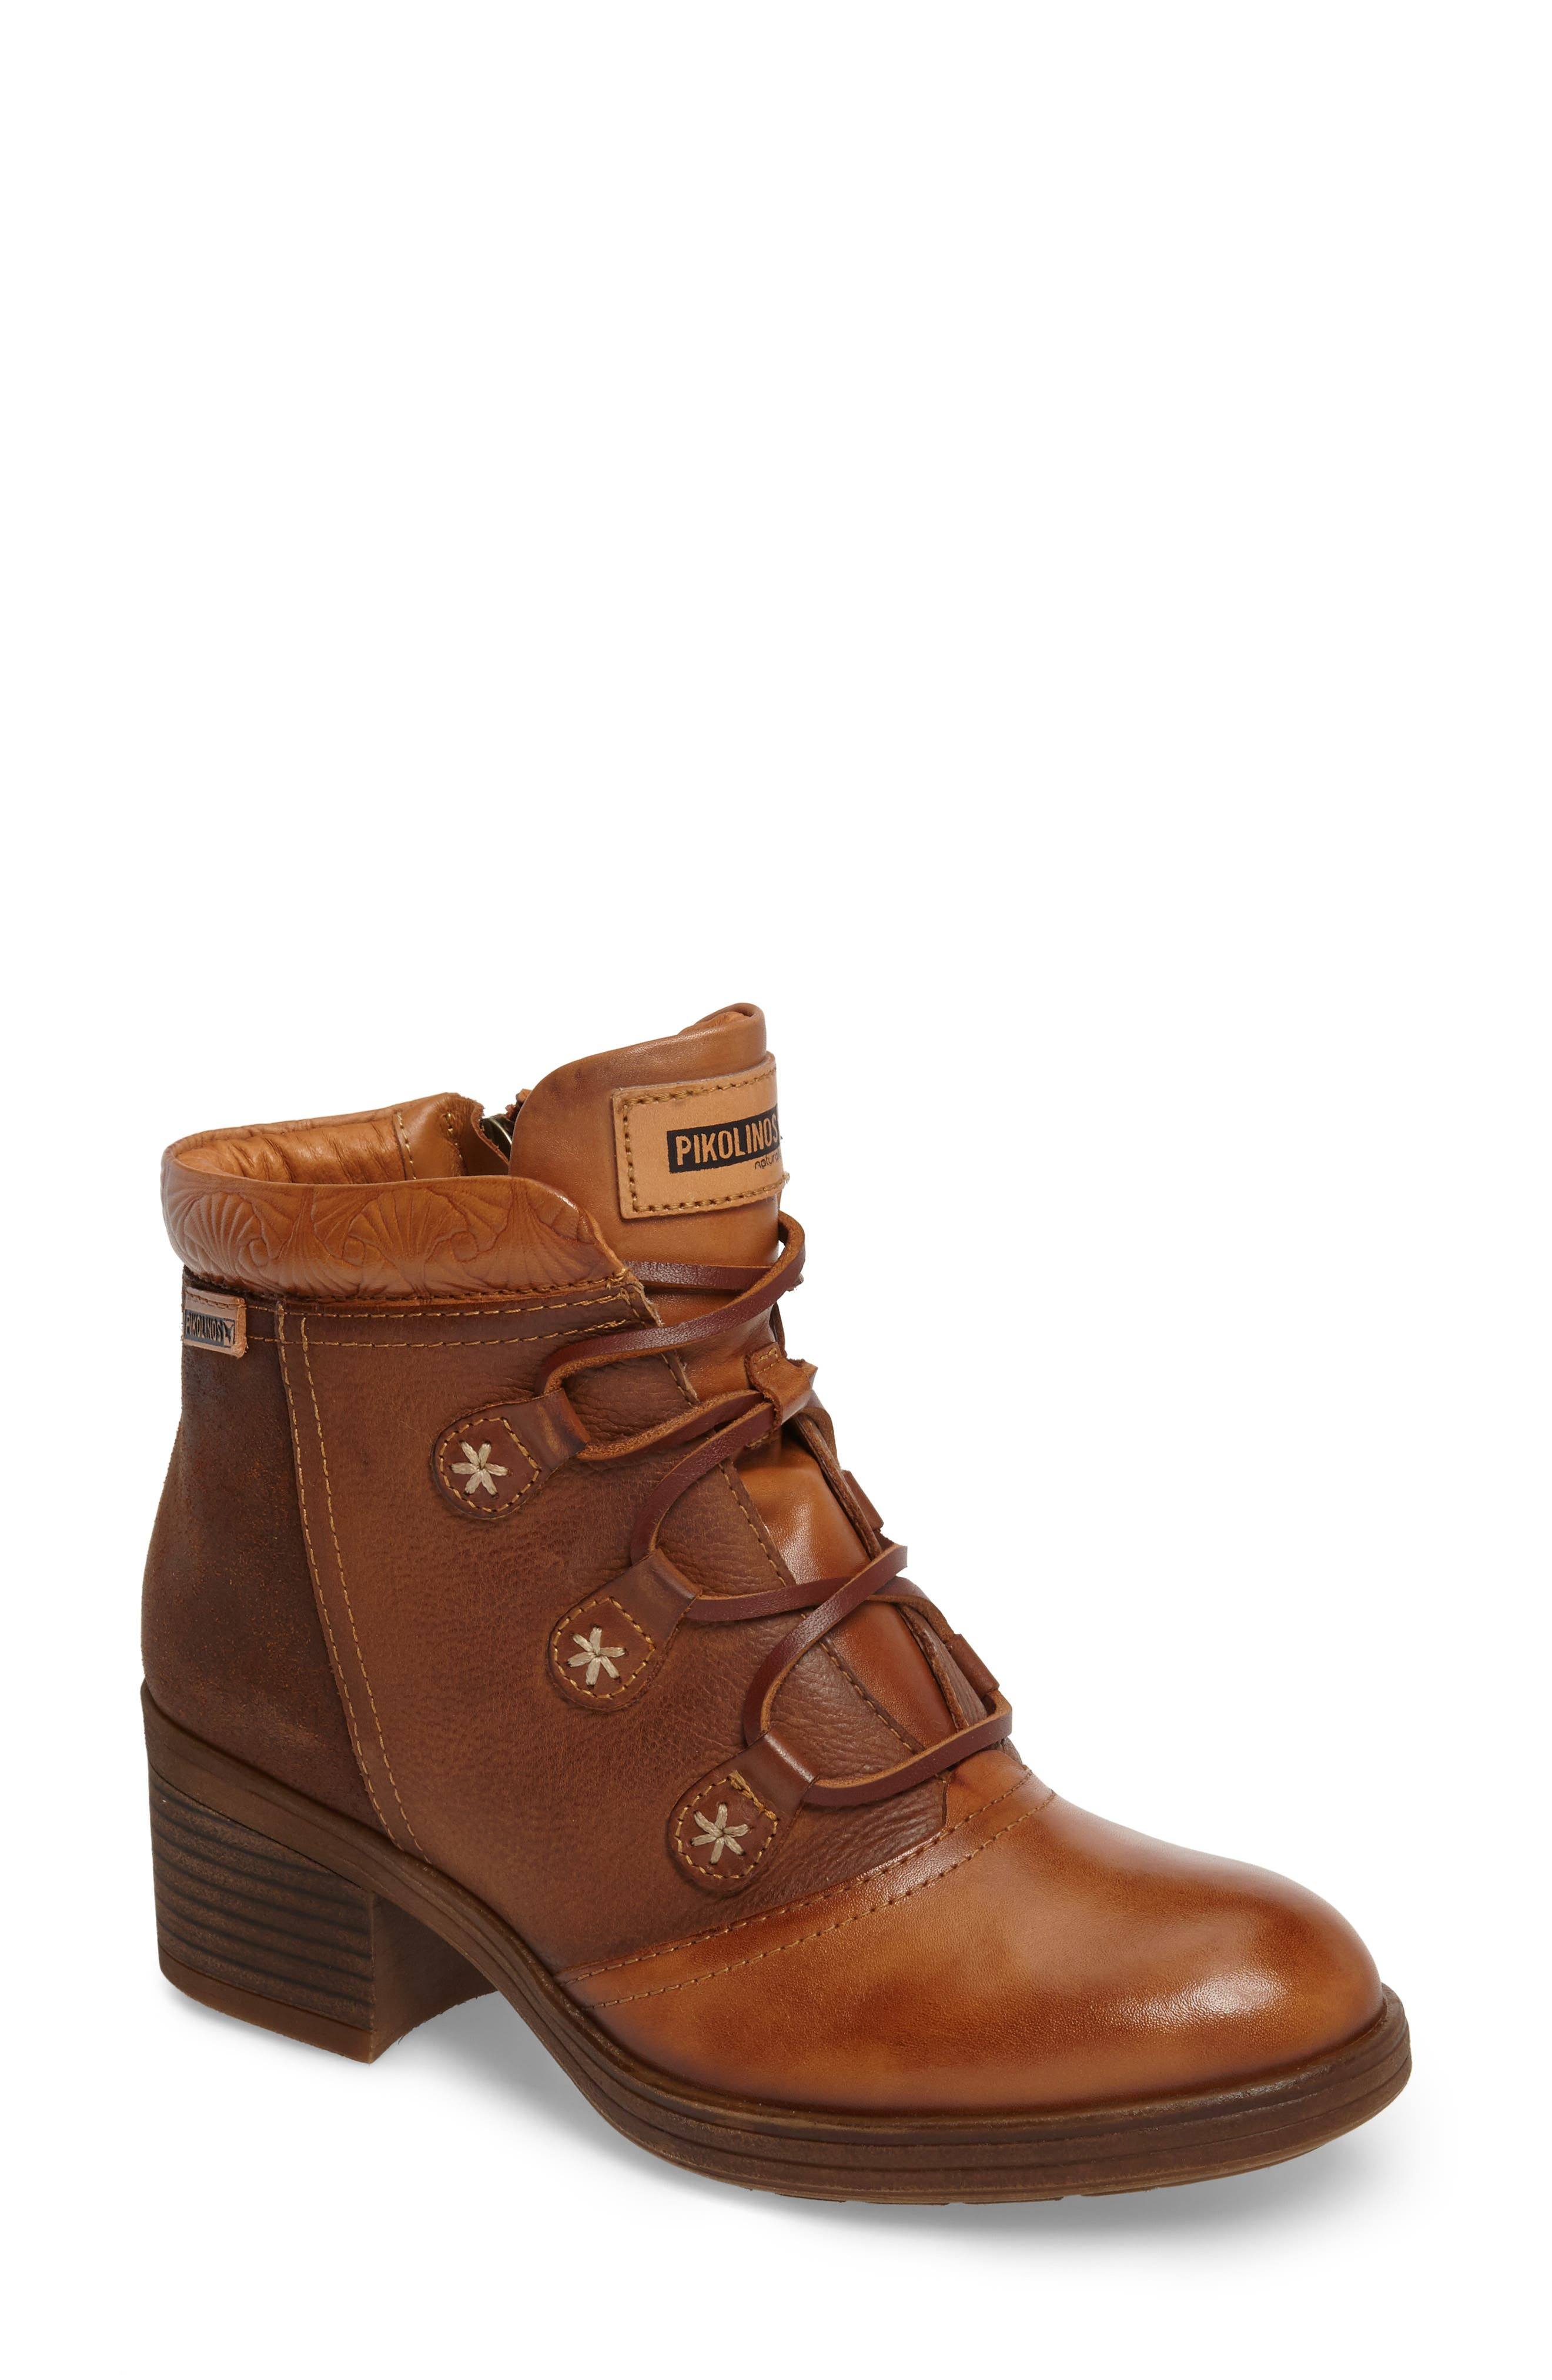 Lyon Lace-Up Boot,                         Main,                         color, Brandy Leather